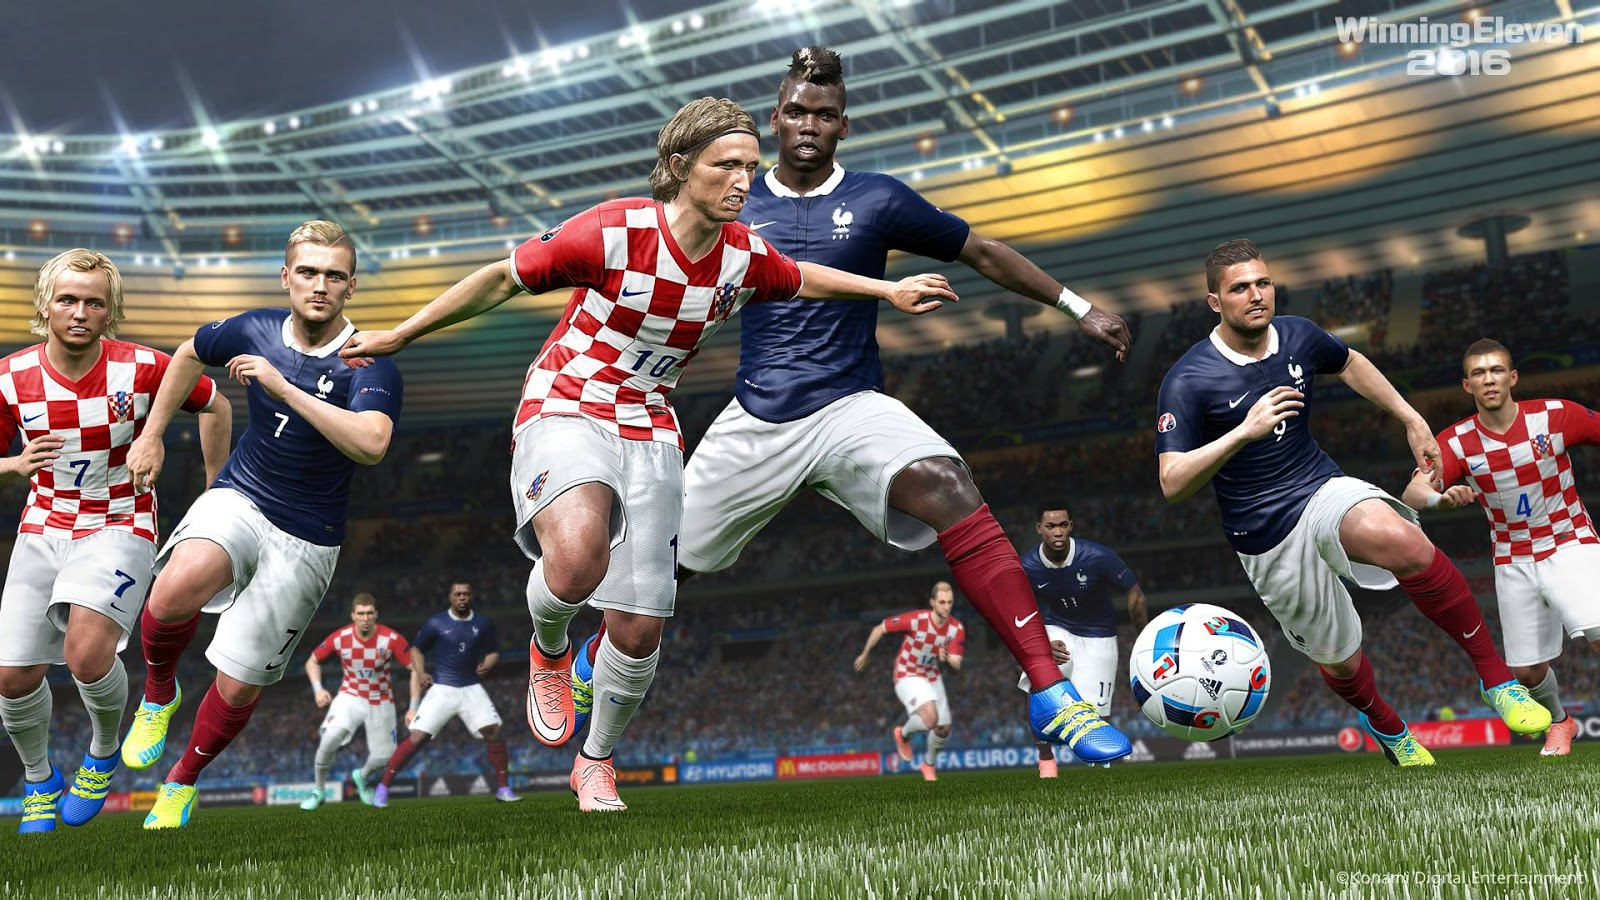 PES 2016 Crack Online 1.04.00 FIX Update 24/03/2016